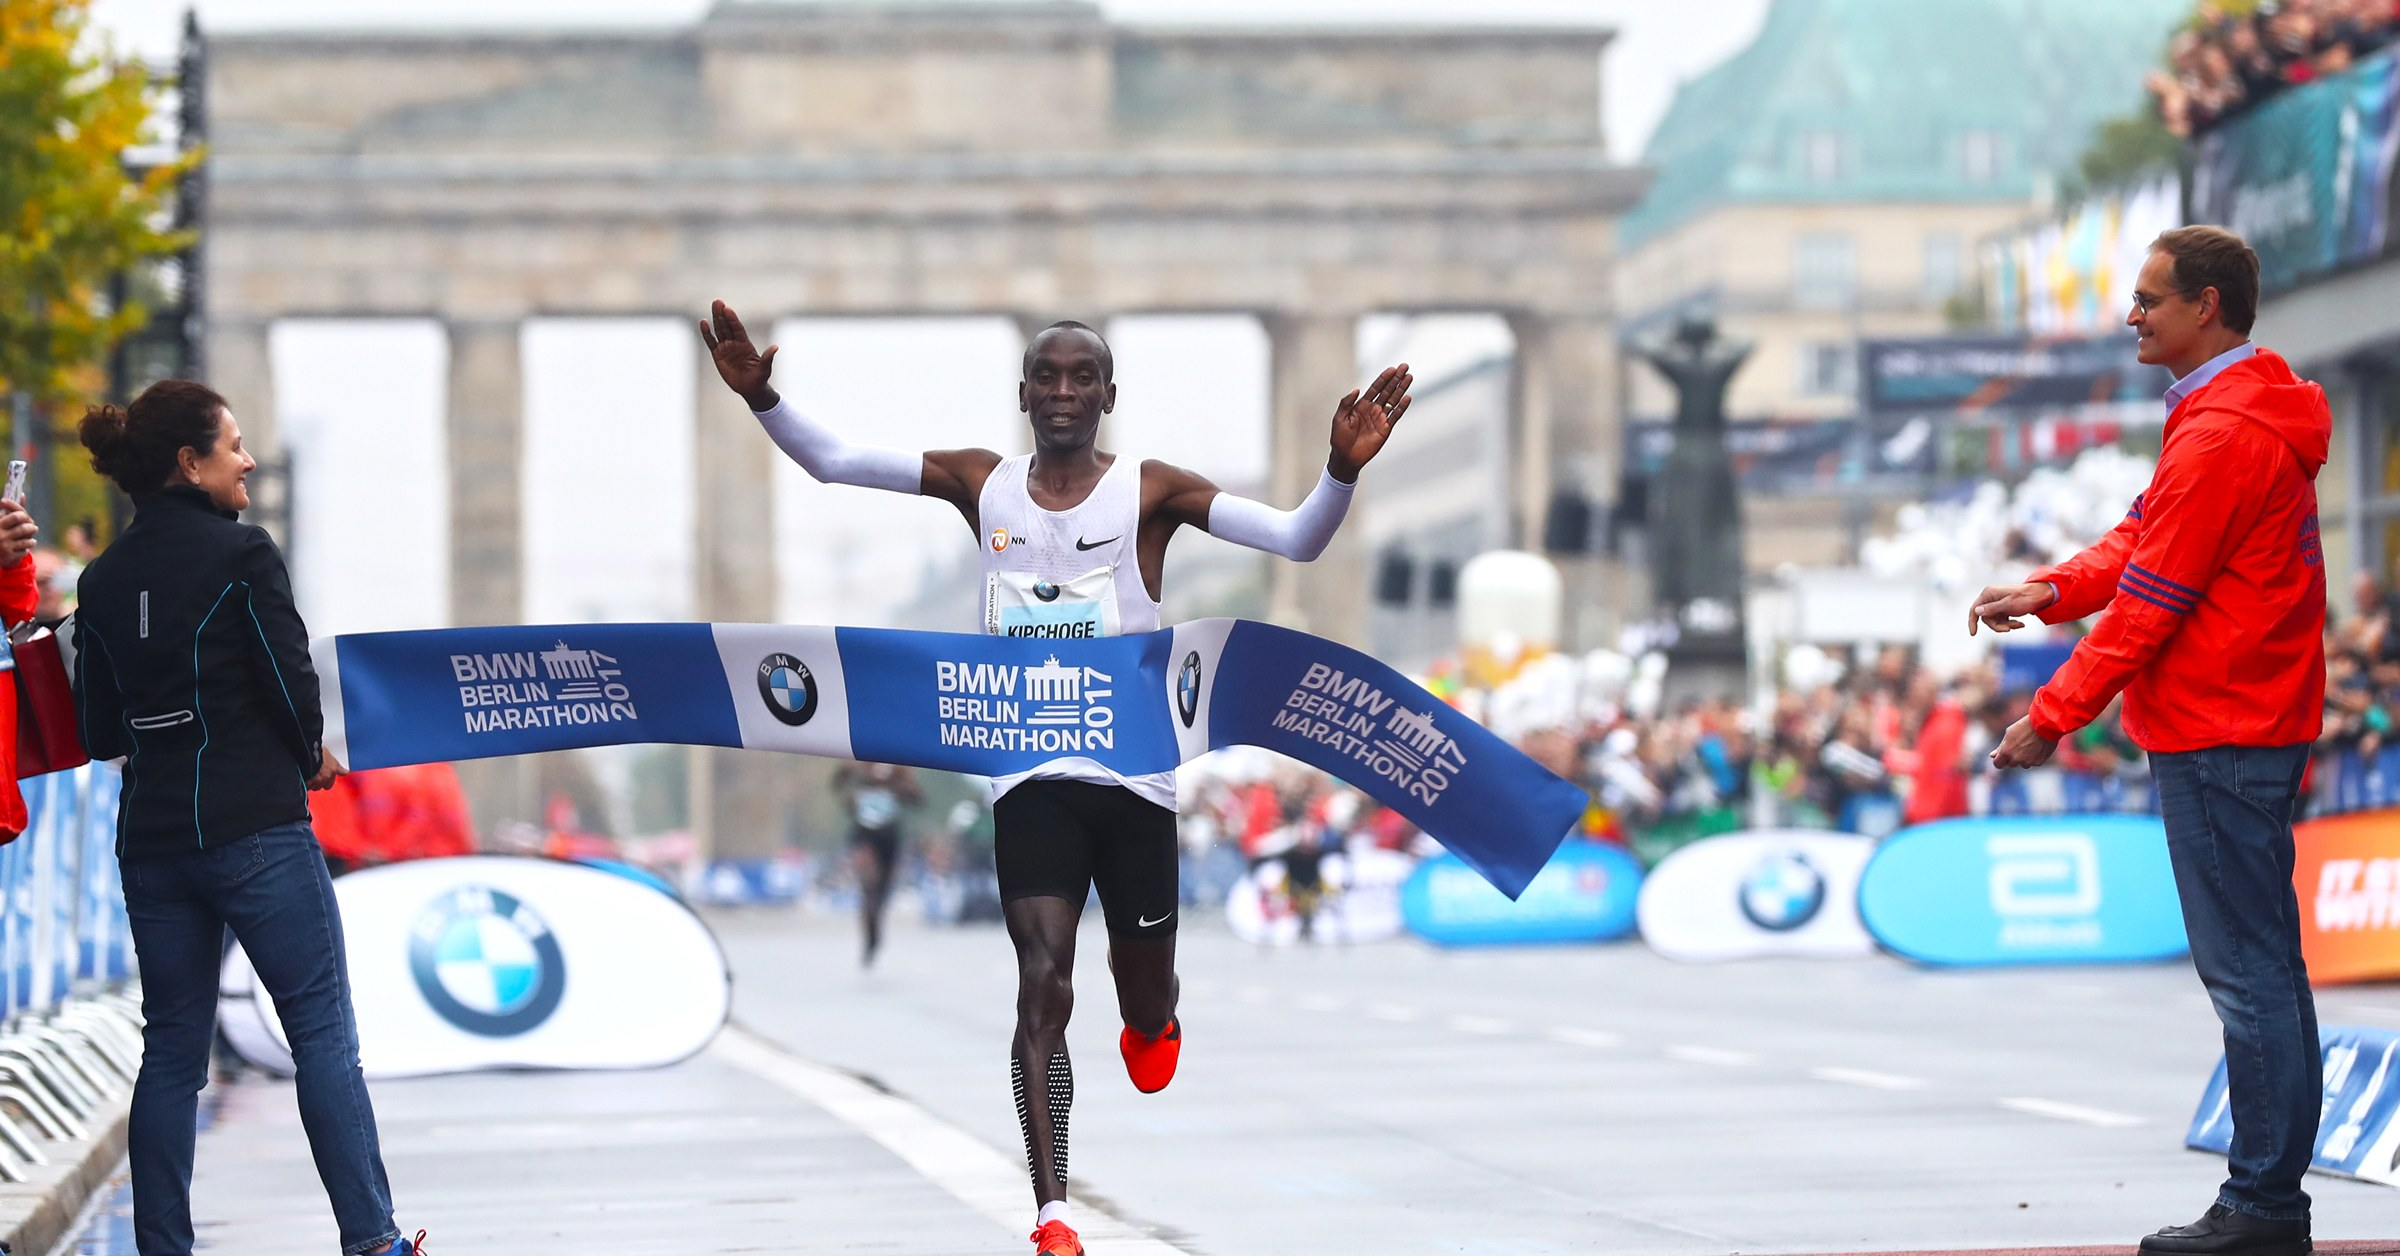 Live From The Berlin Marathon: You Can't Outrun Bad Weather